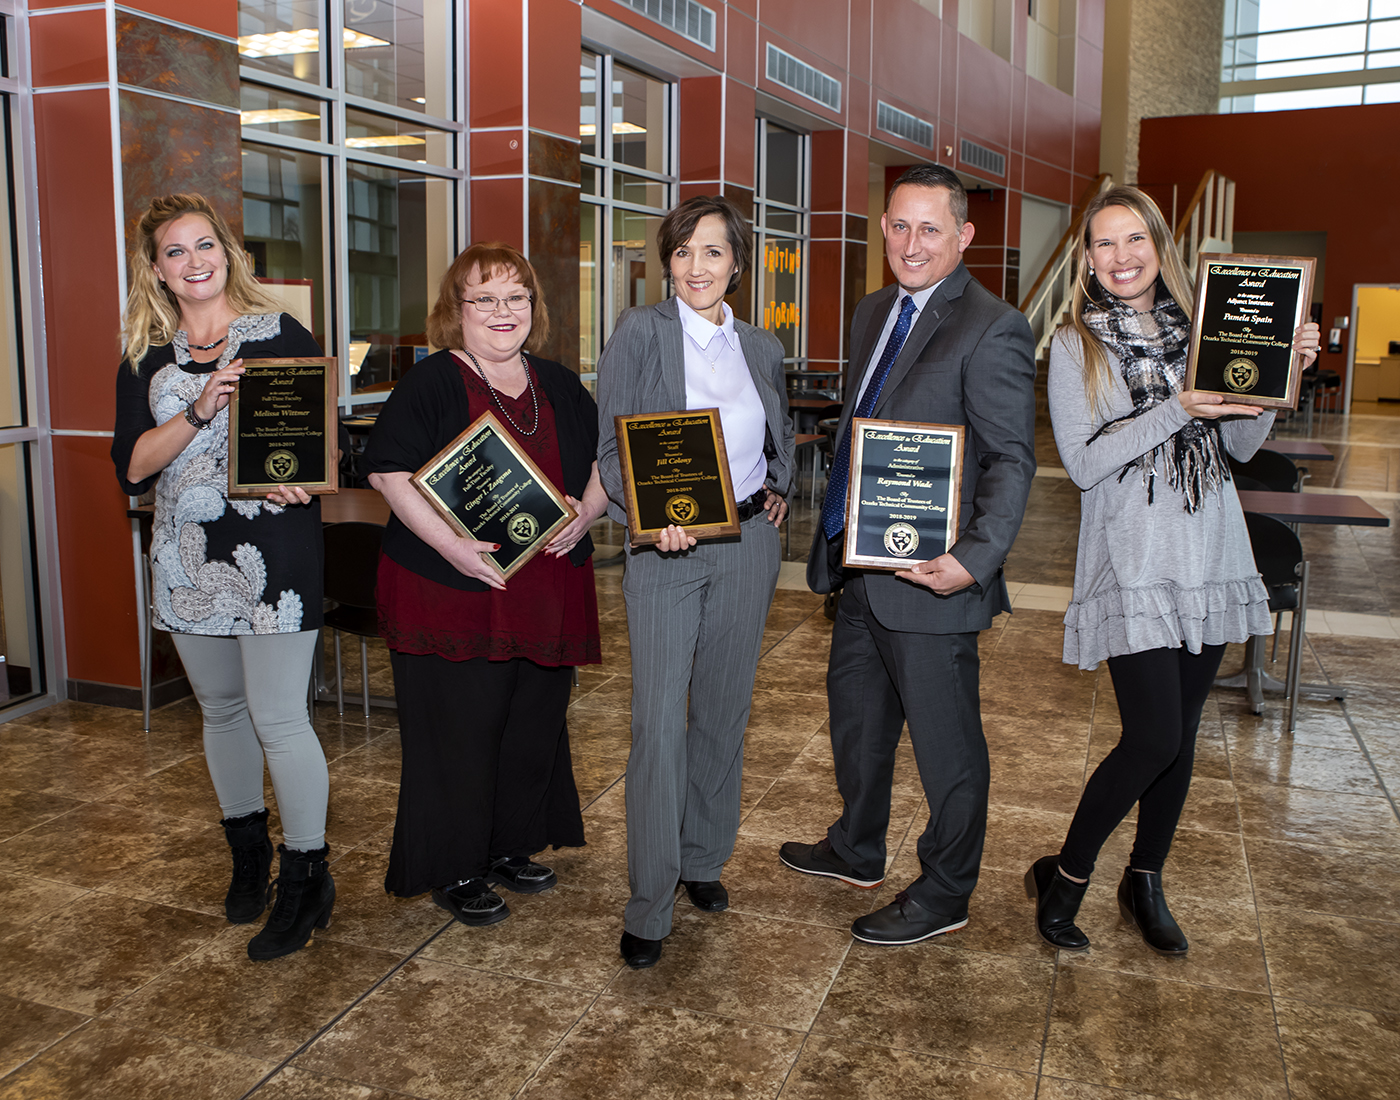 the winners of the 2018-2019 Excellence in Education awards